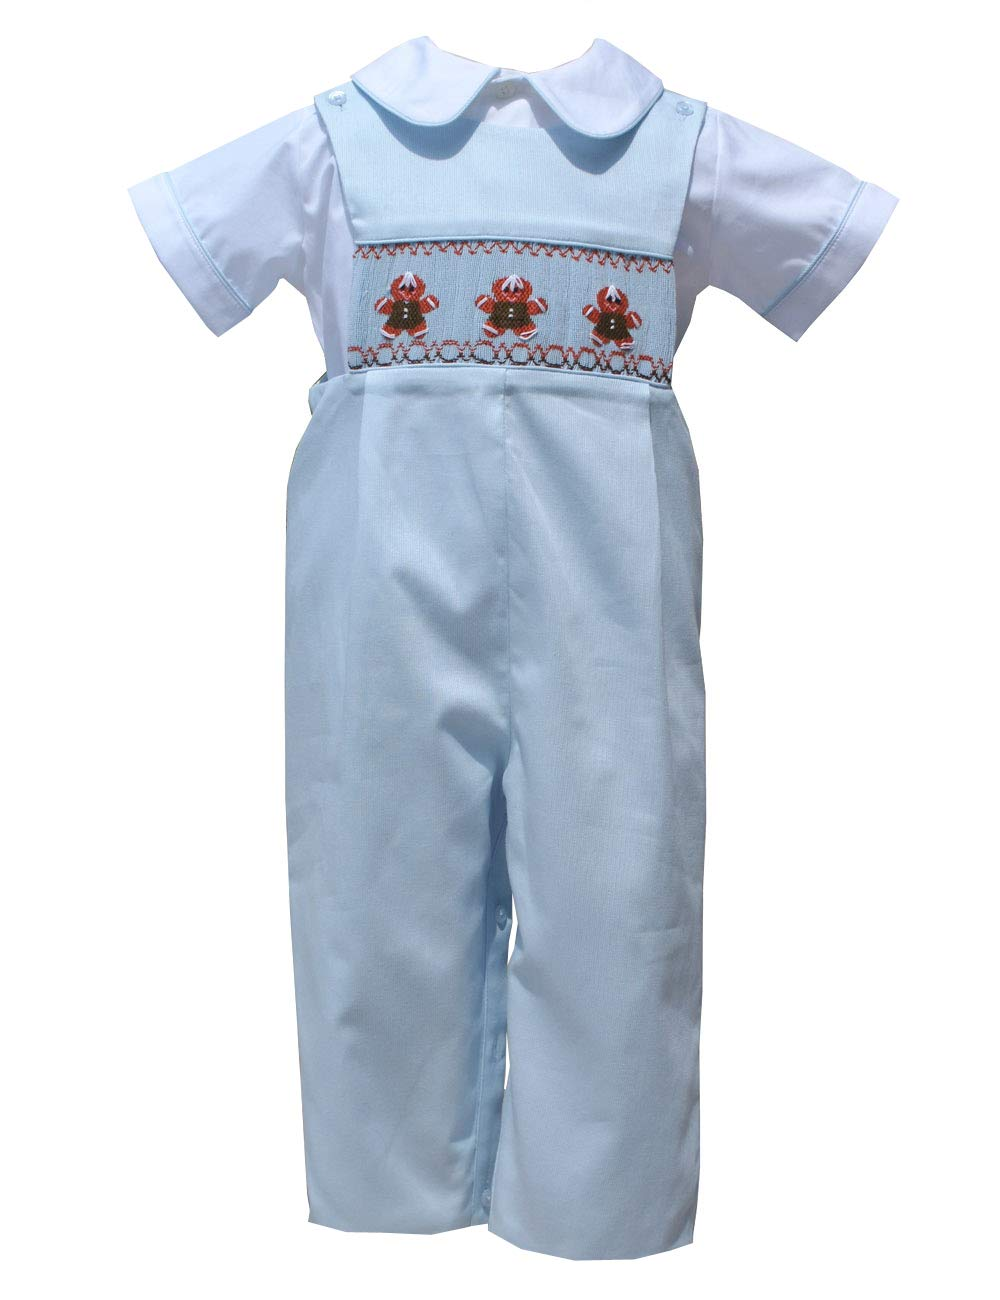 Carouselwear Baby Boy Smocked Gingerbread Boy Longall Toddler Outfit